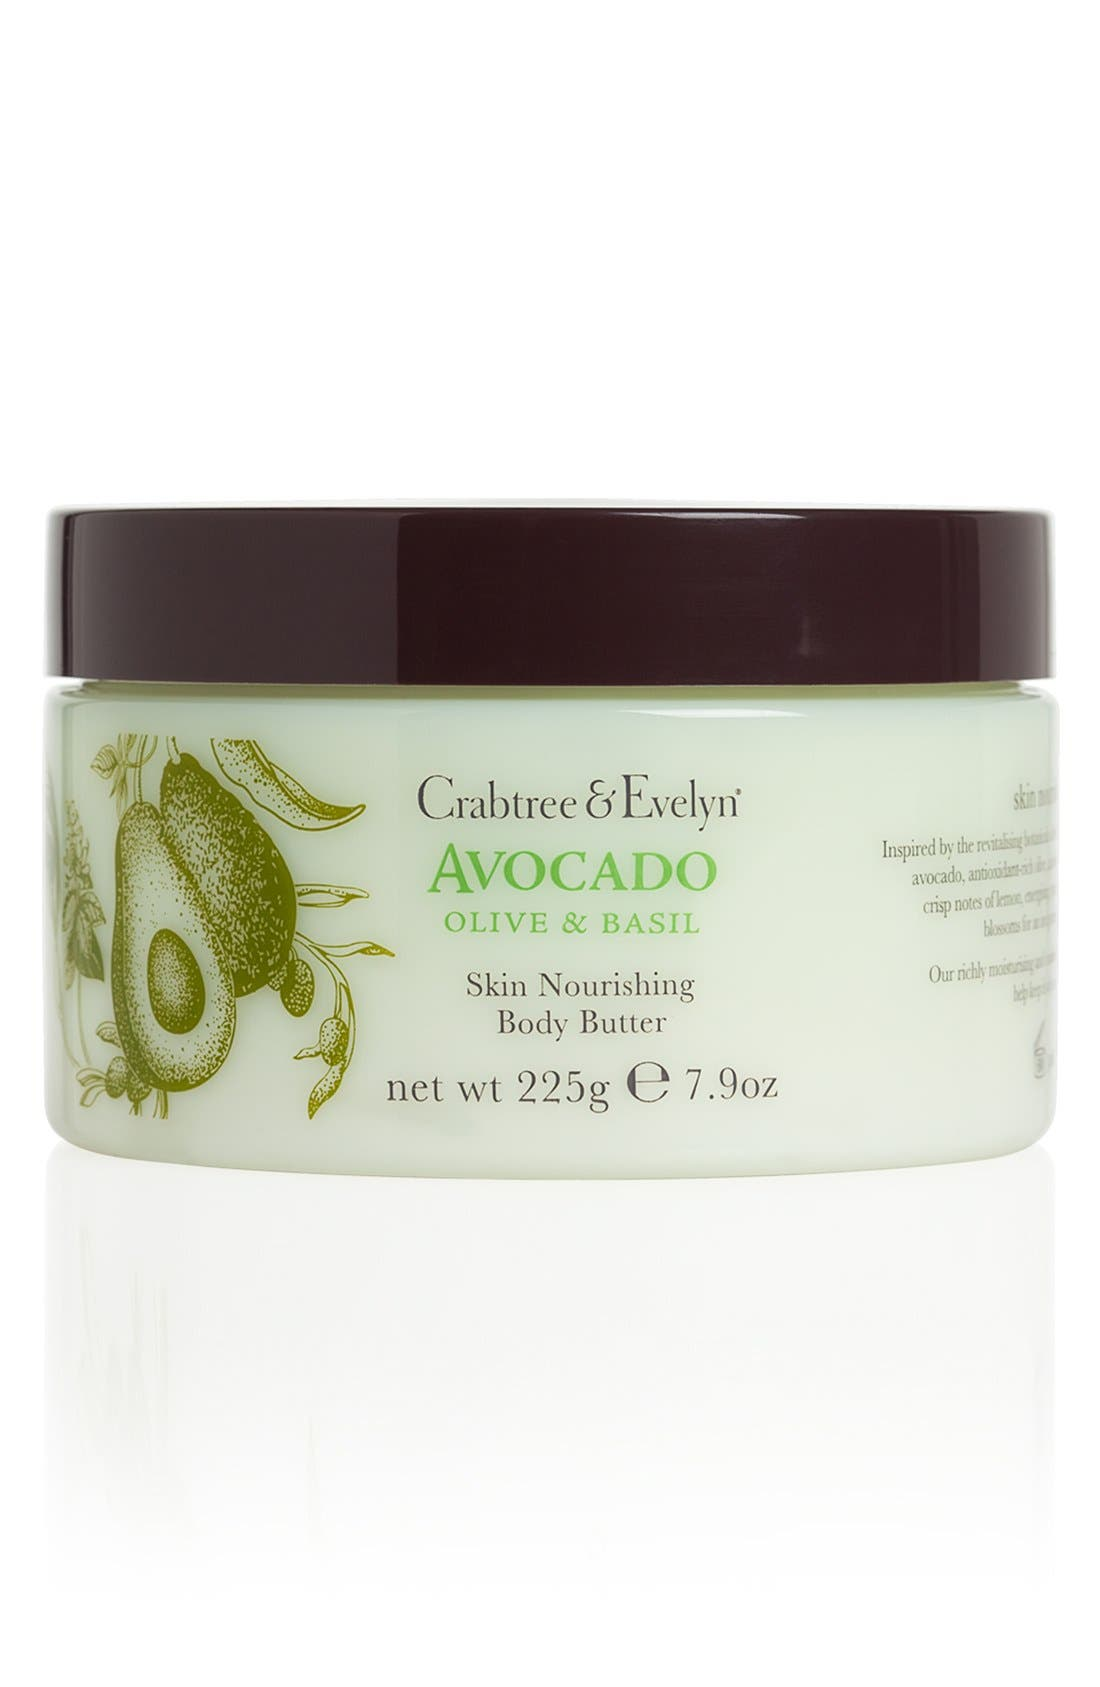 Crabtree & Evelyn 'Avocado, Olive & Basil' Skin Nourishing Body Butter